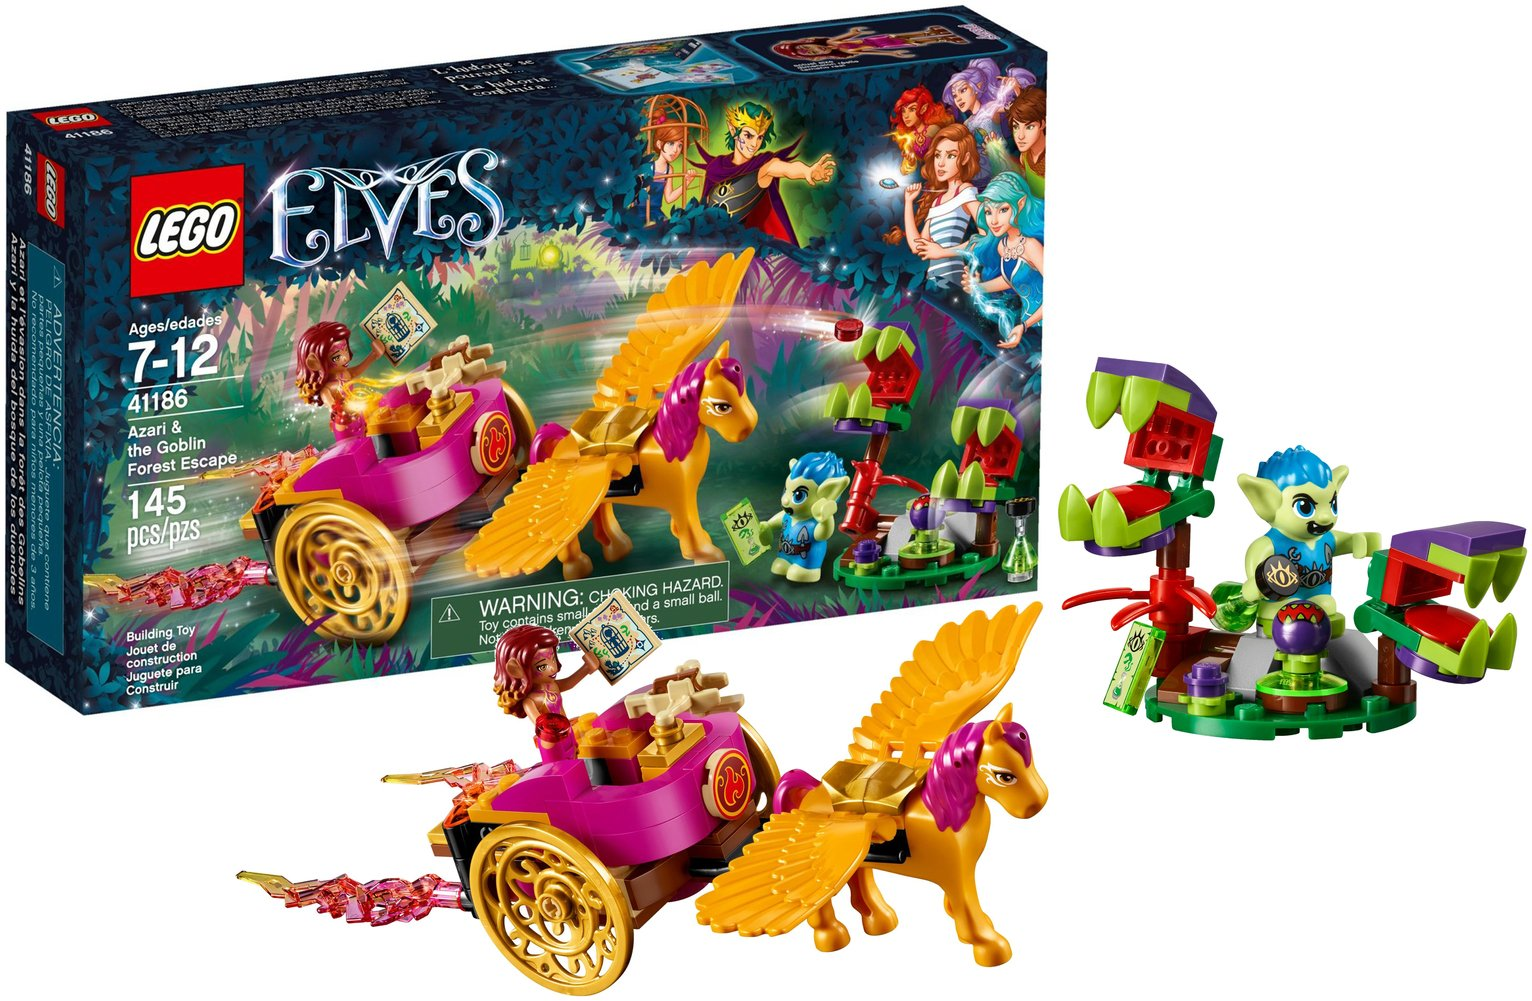 LEGO Elves Azaria & Goblin Escape - 41186